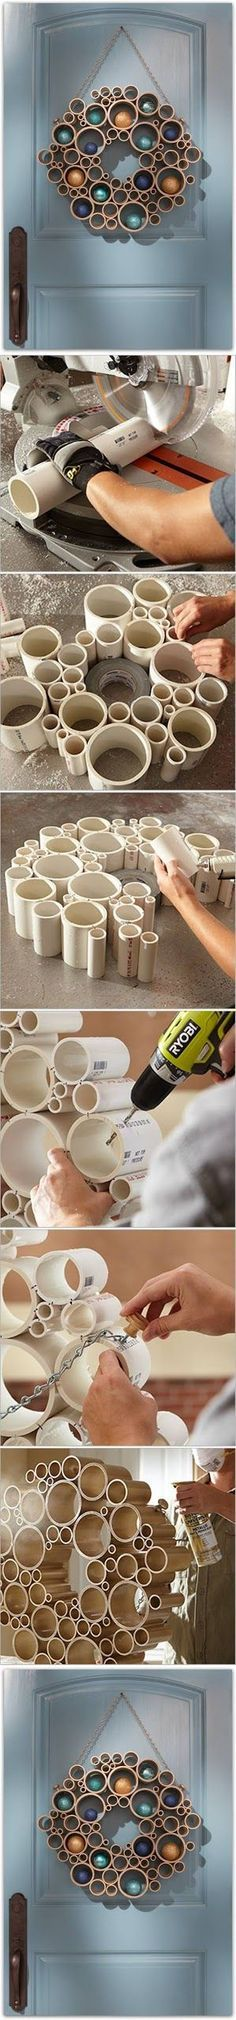 Door Décor - instead of PVC pipe, use sections of toilet paper and paper towel rolls, spray paint.